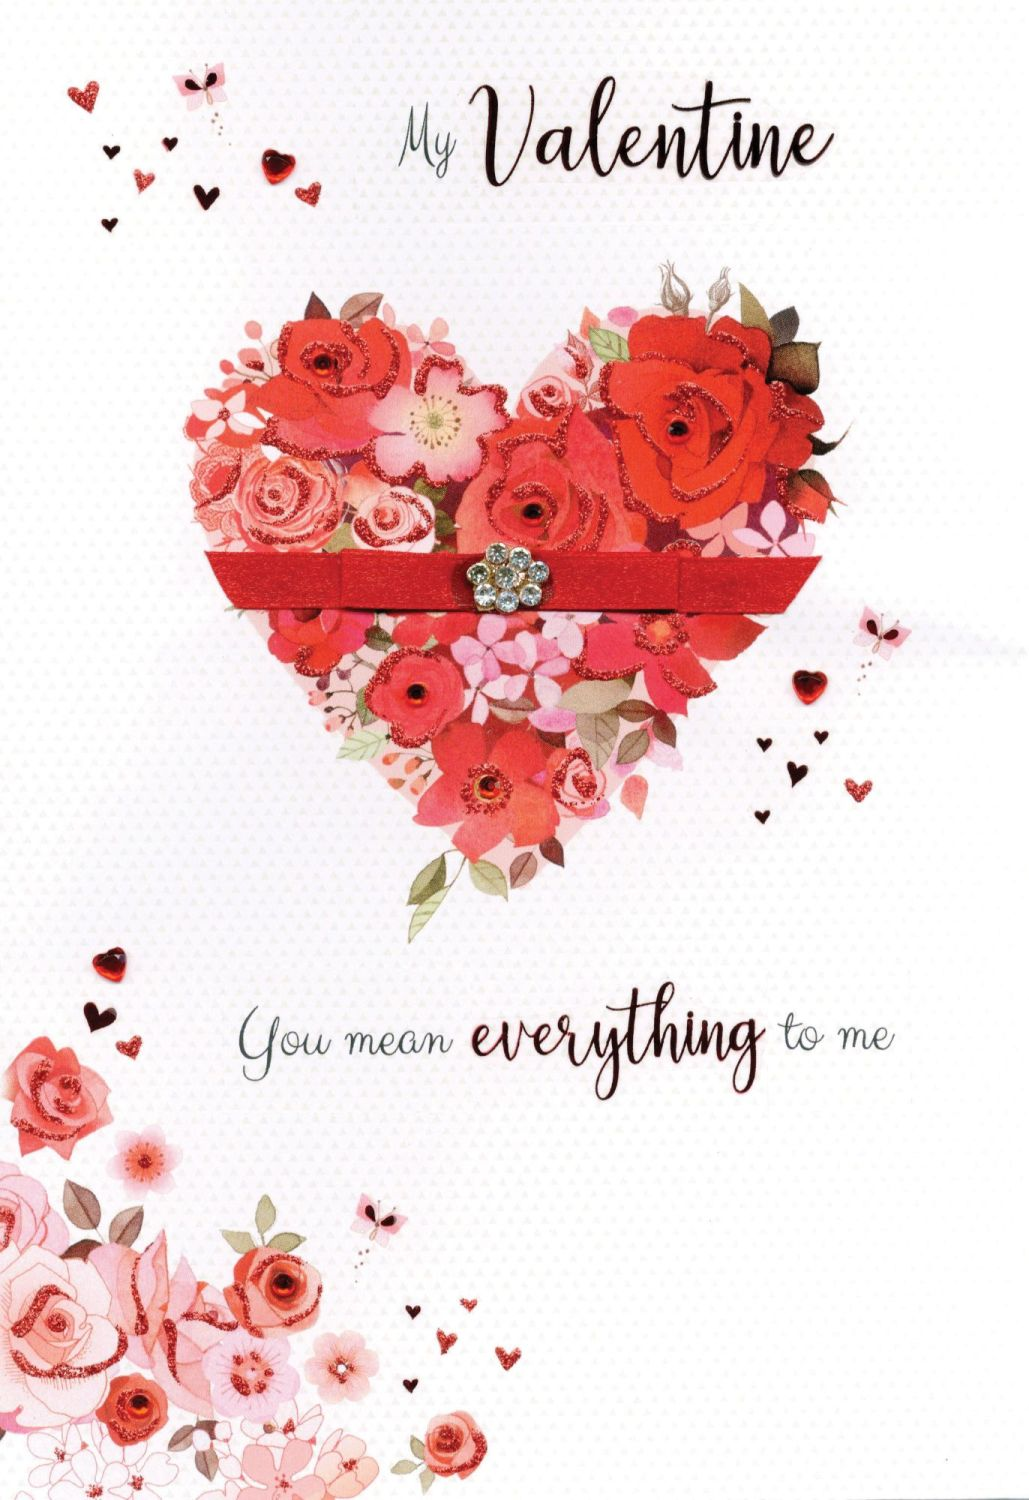 My Valentine You Mean Everything To Me - Large Card